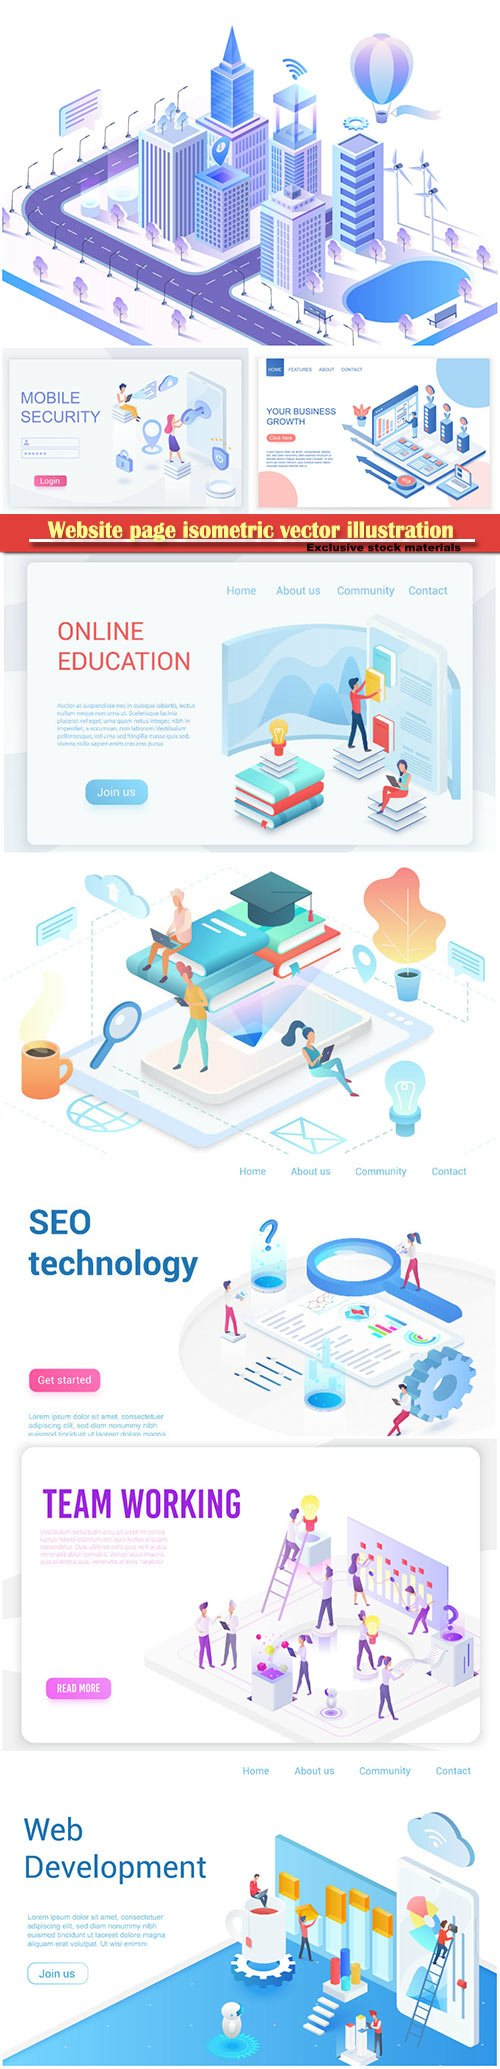 Website page isometric vector illustration, flat banner # 9